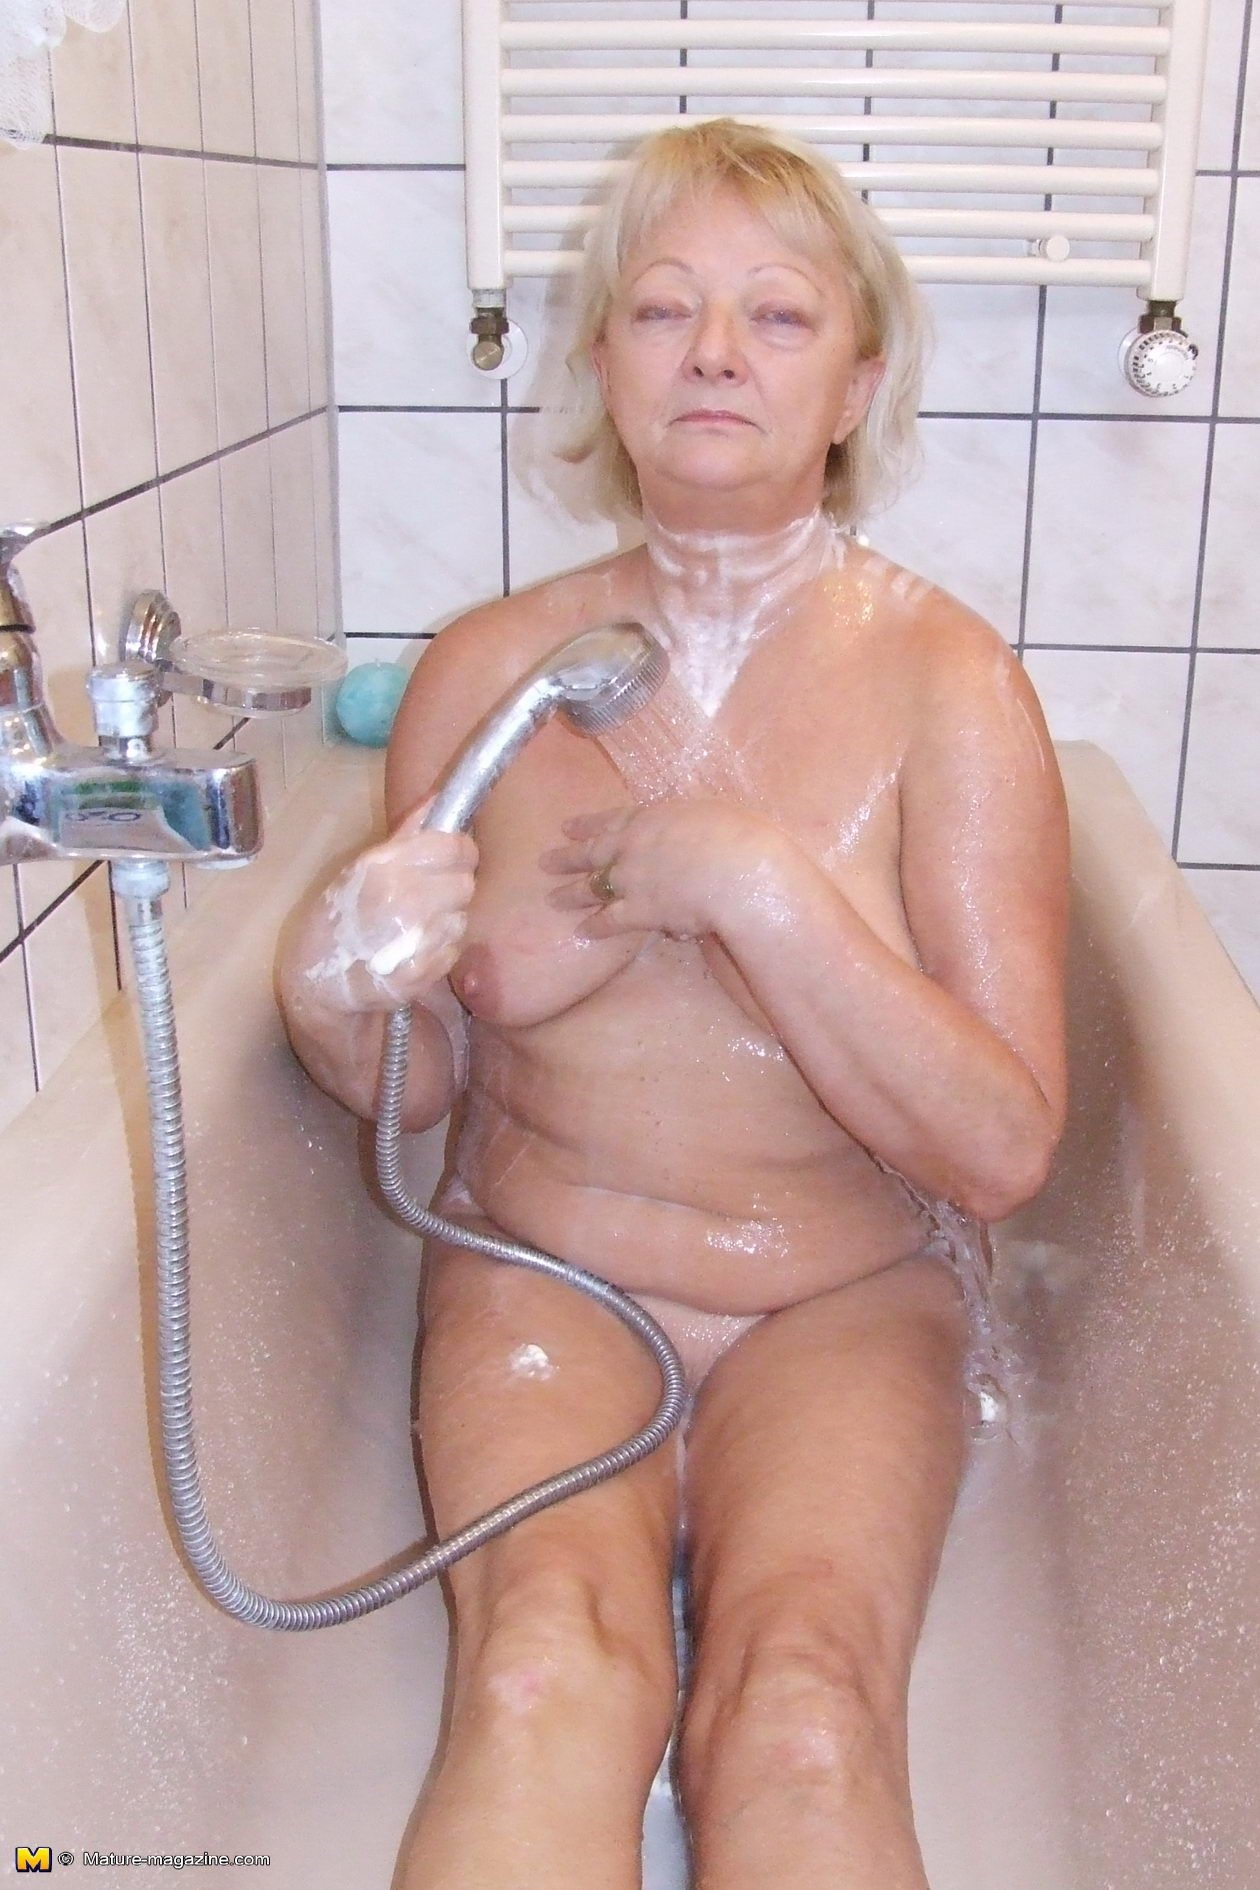 undressing granny pics there